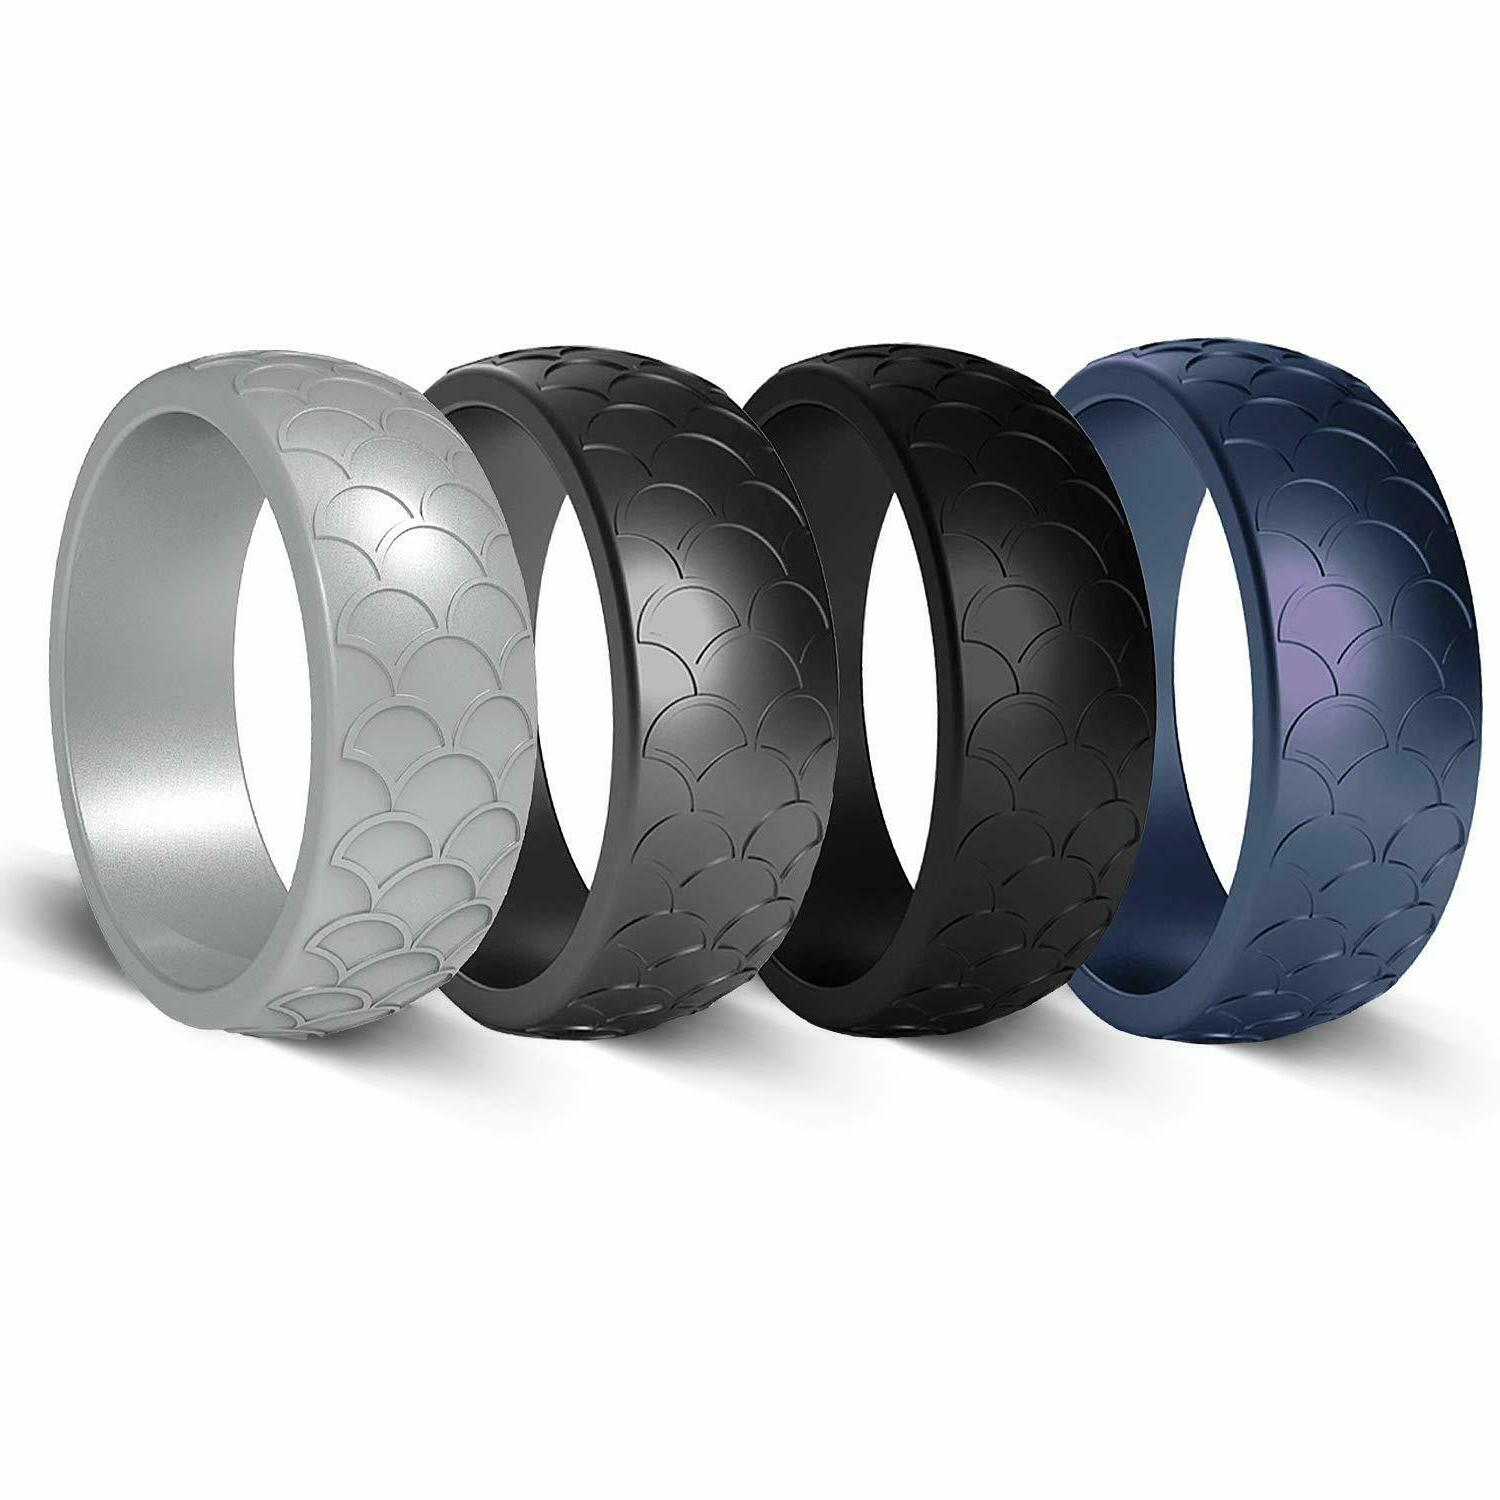 Silicone Men Sleek Rubber Bands Safe Rings